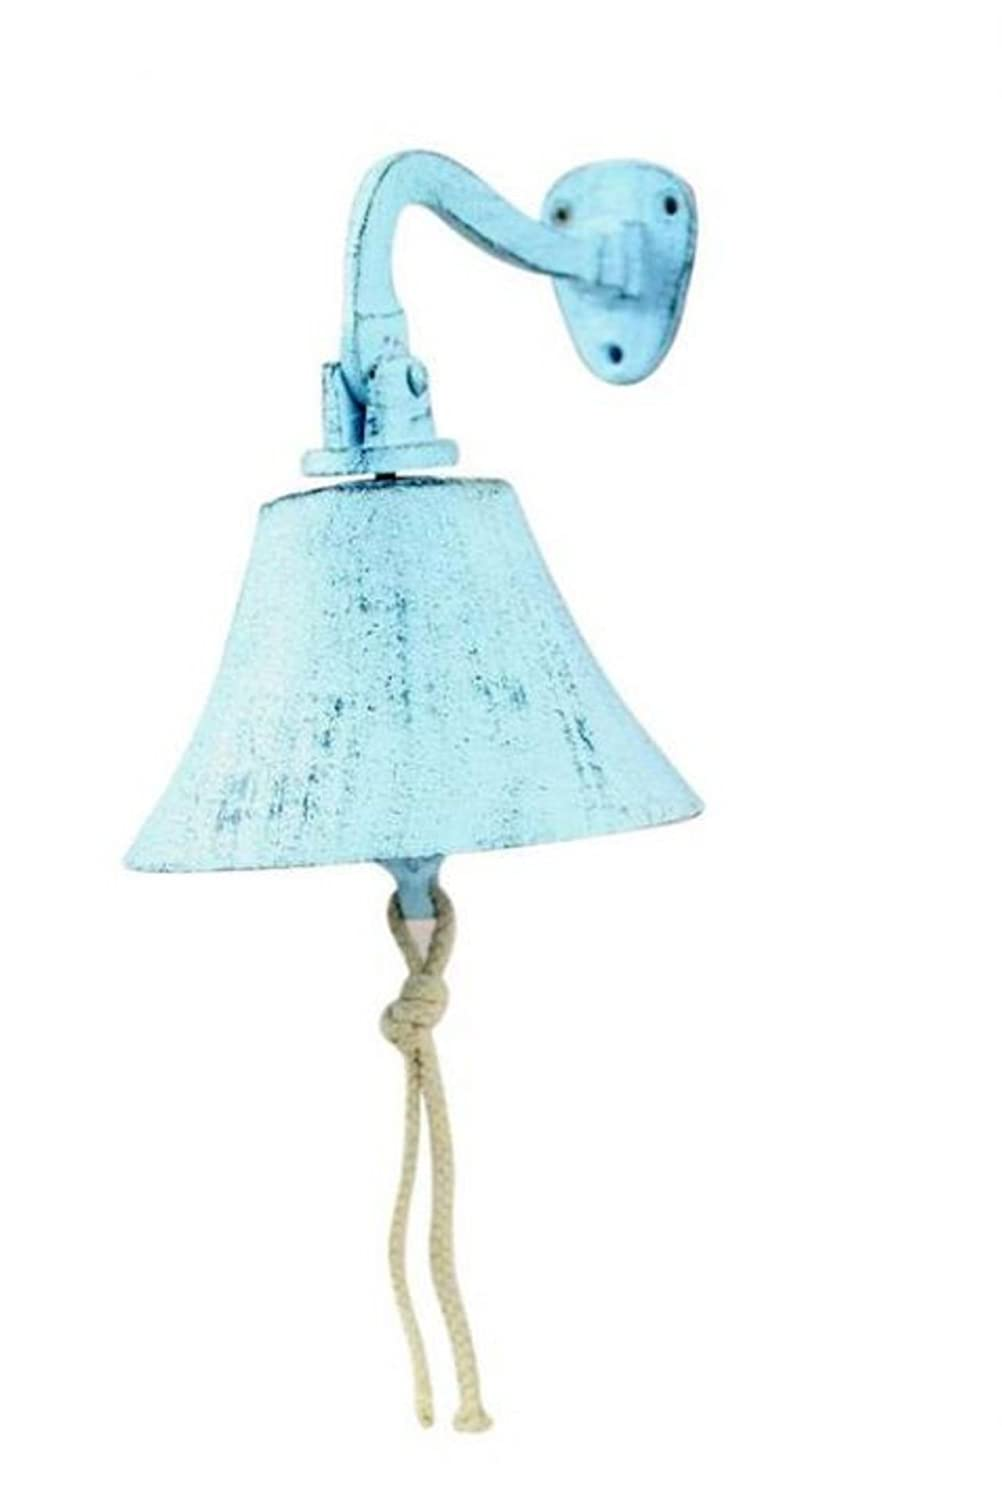 Captains Bell Rustic Black Cast Iron Hanging Ships Bell 6 Inch Rustic Wall Art